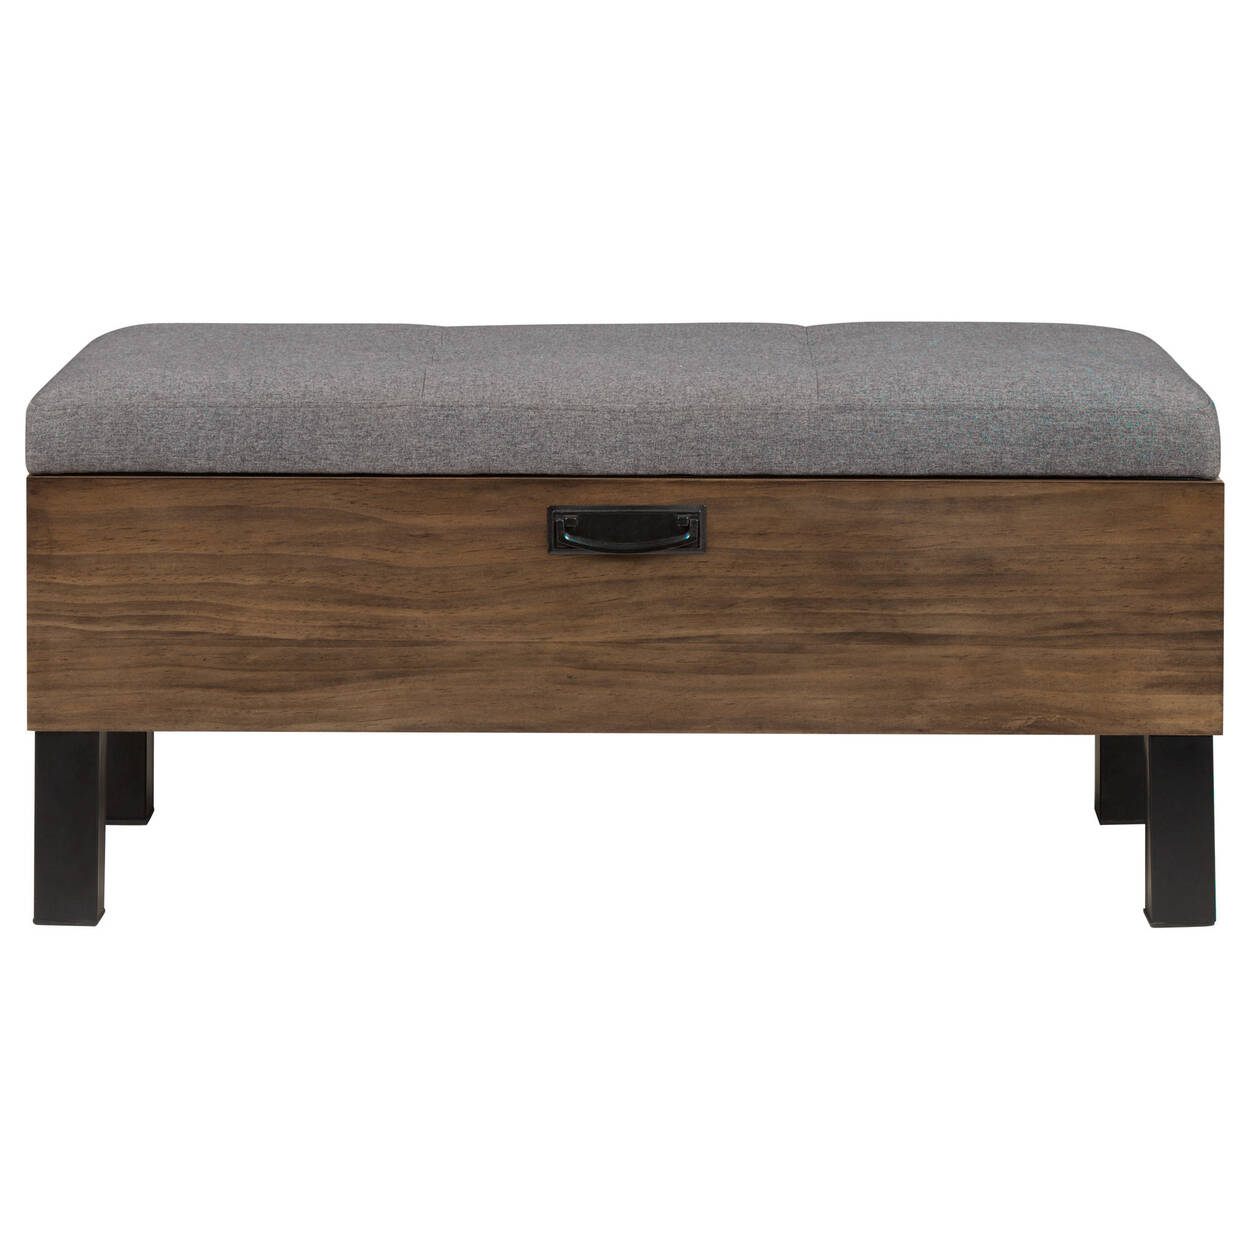 Industrial Wood and Fabric Storage Ottoman